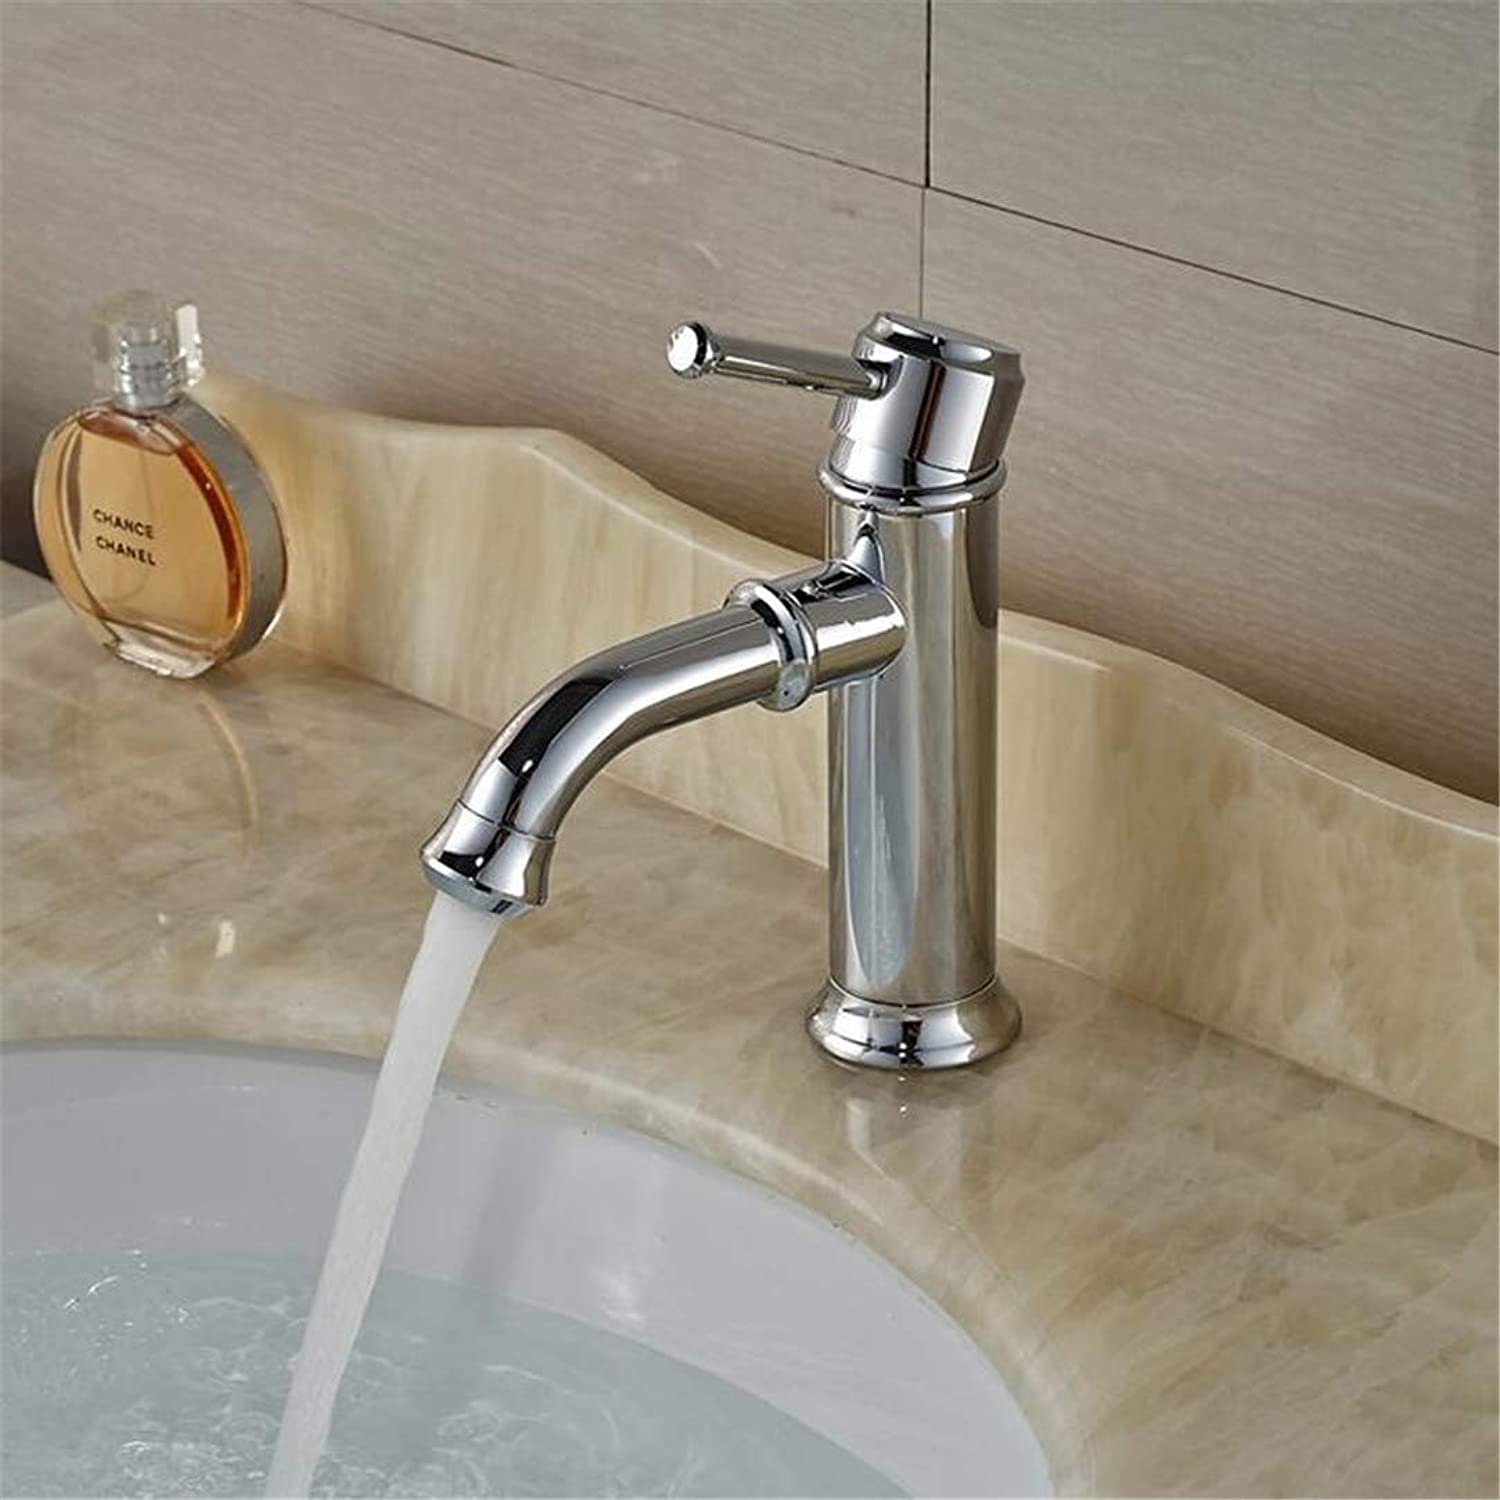 Faucet Washbasin Mixer Deck Mount Bathroom Vessel Sink Faucet Single Handle Hot Cold Water Mixer Tap in Chrome